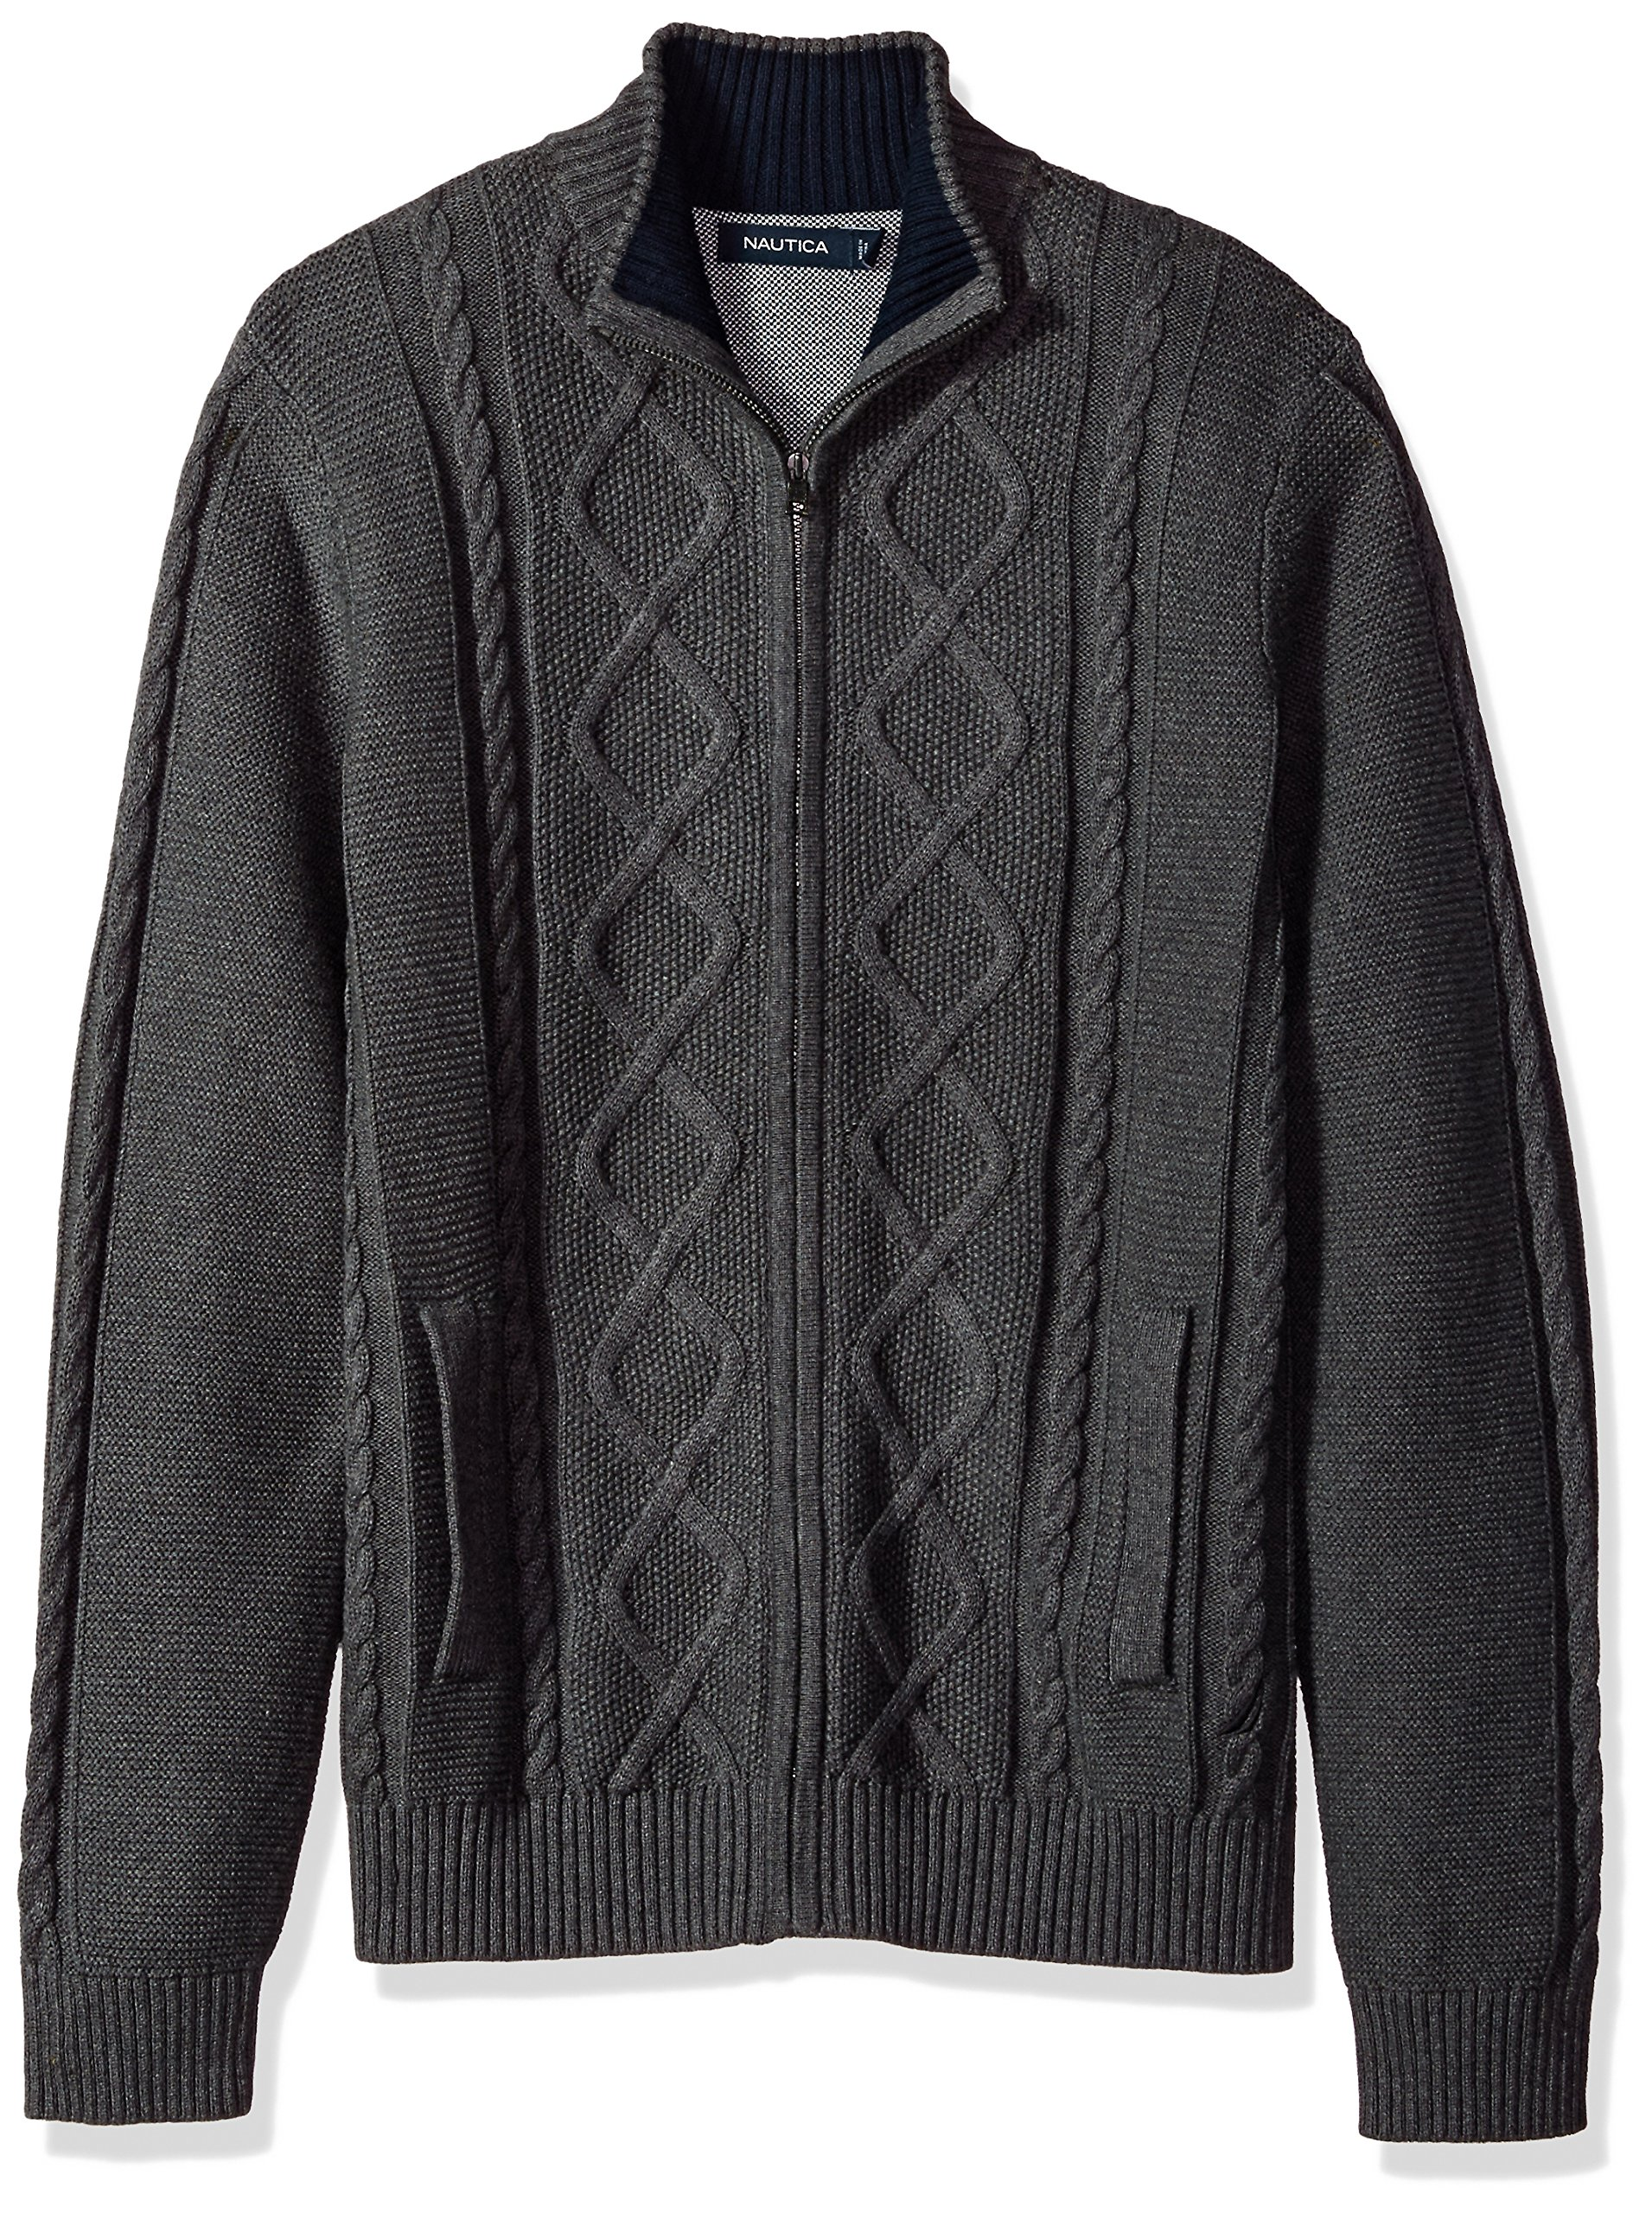 Nautica Men's Long Sleeve V-Neck Cable Sweater, Charcoal Grey, X-Large